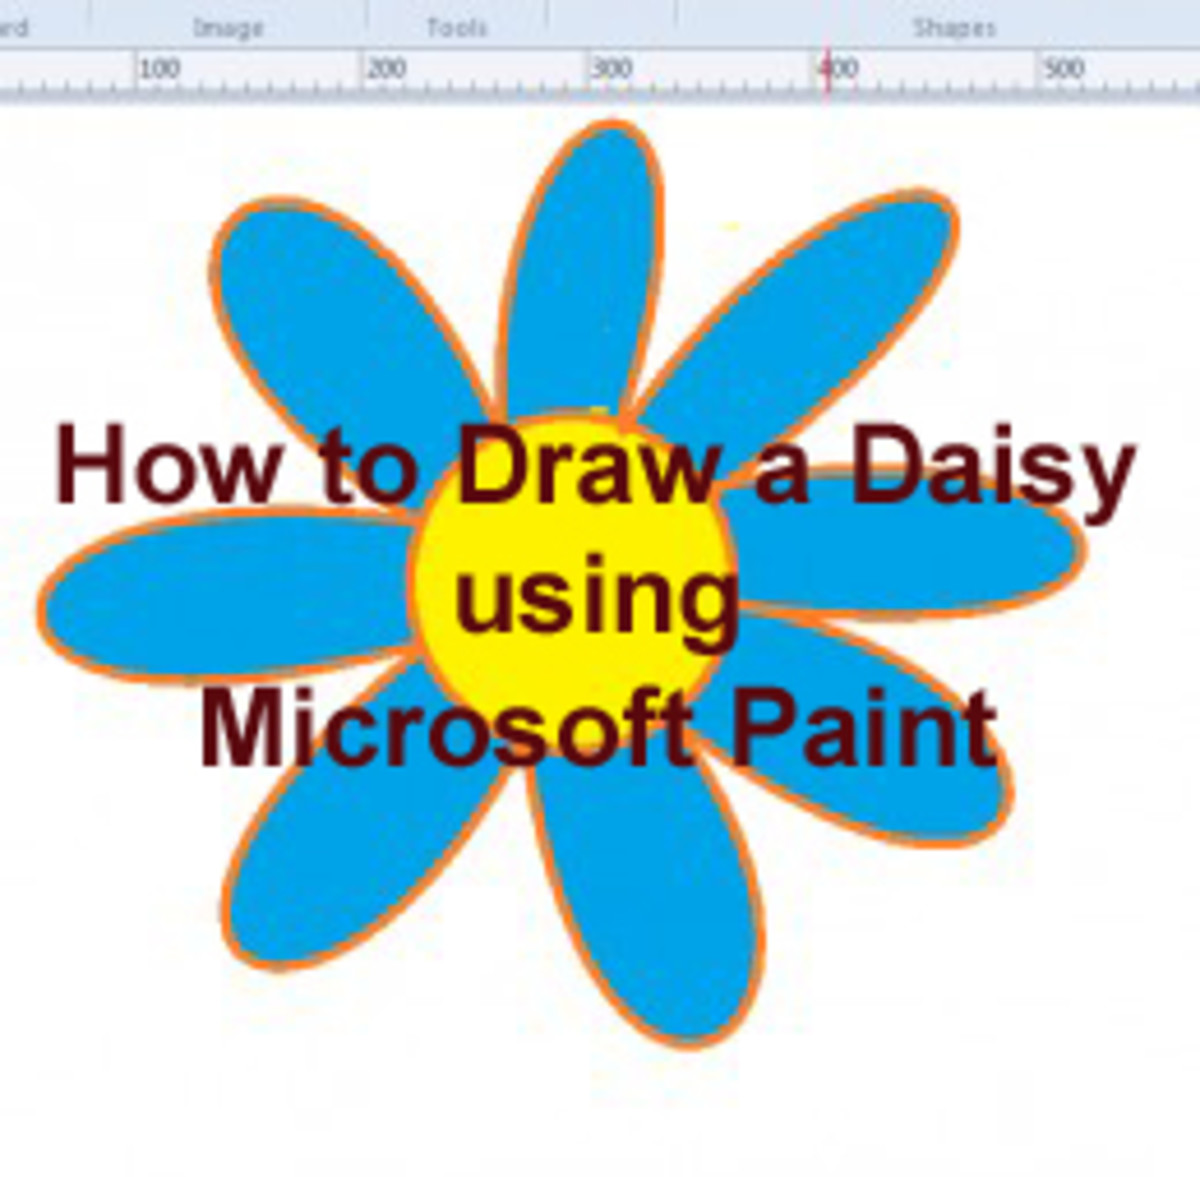 A daisy drown in Microsoft paint